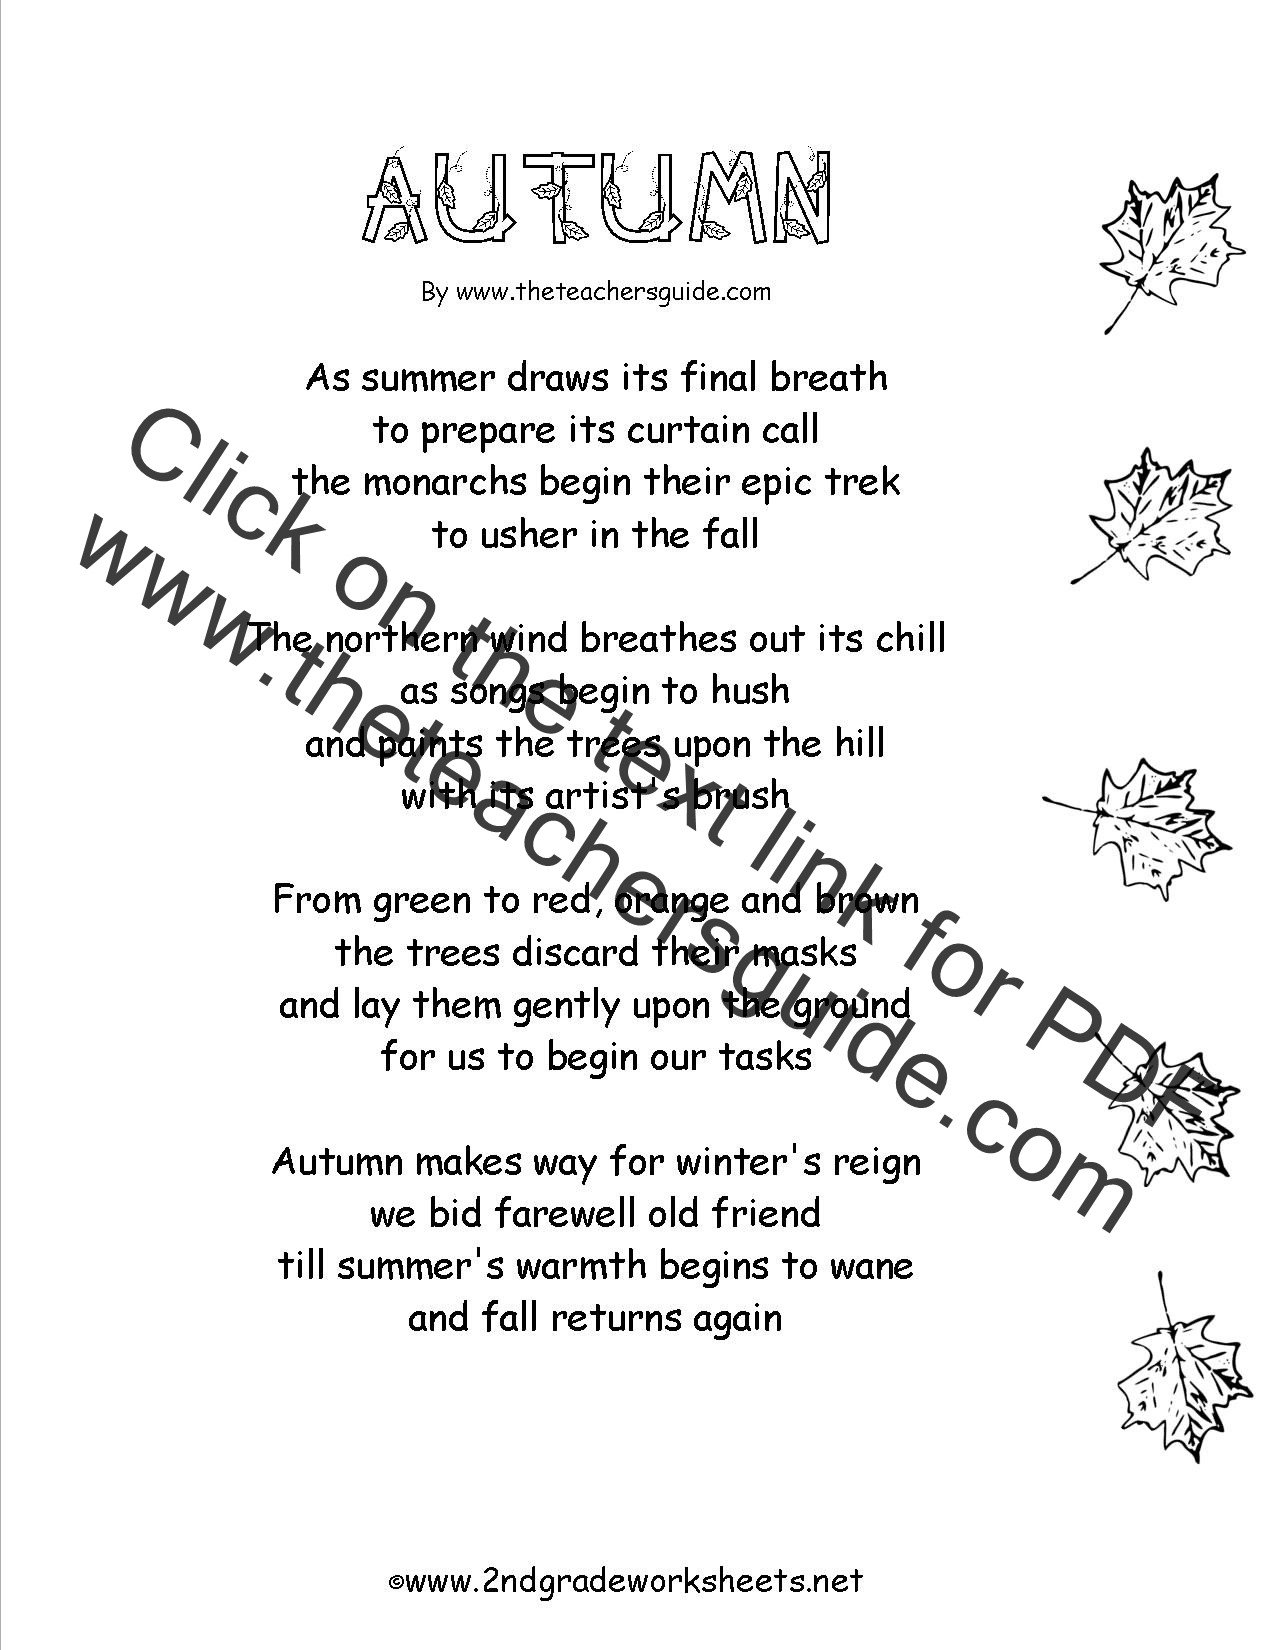 Theme Worksheets 2nd Grade Autumn theme Worksheets and Printouts